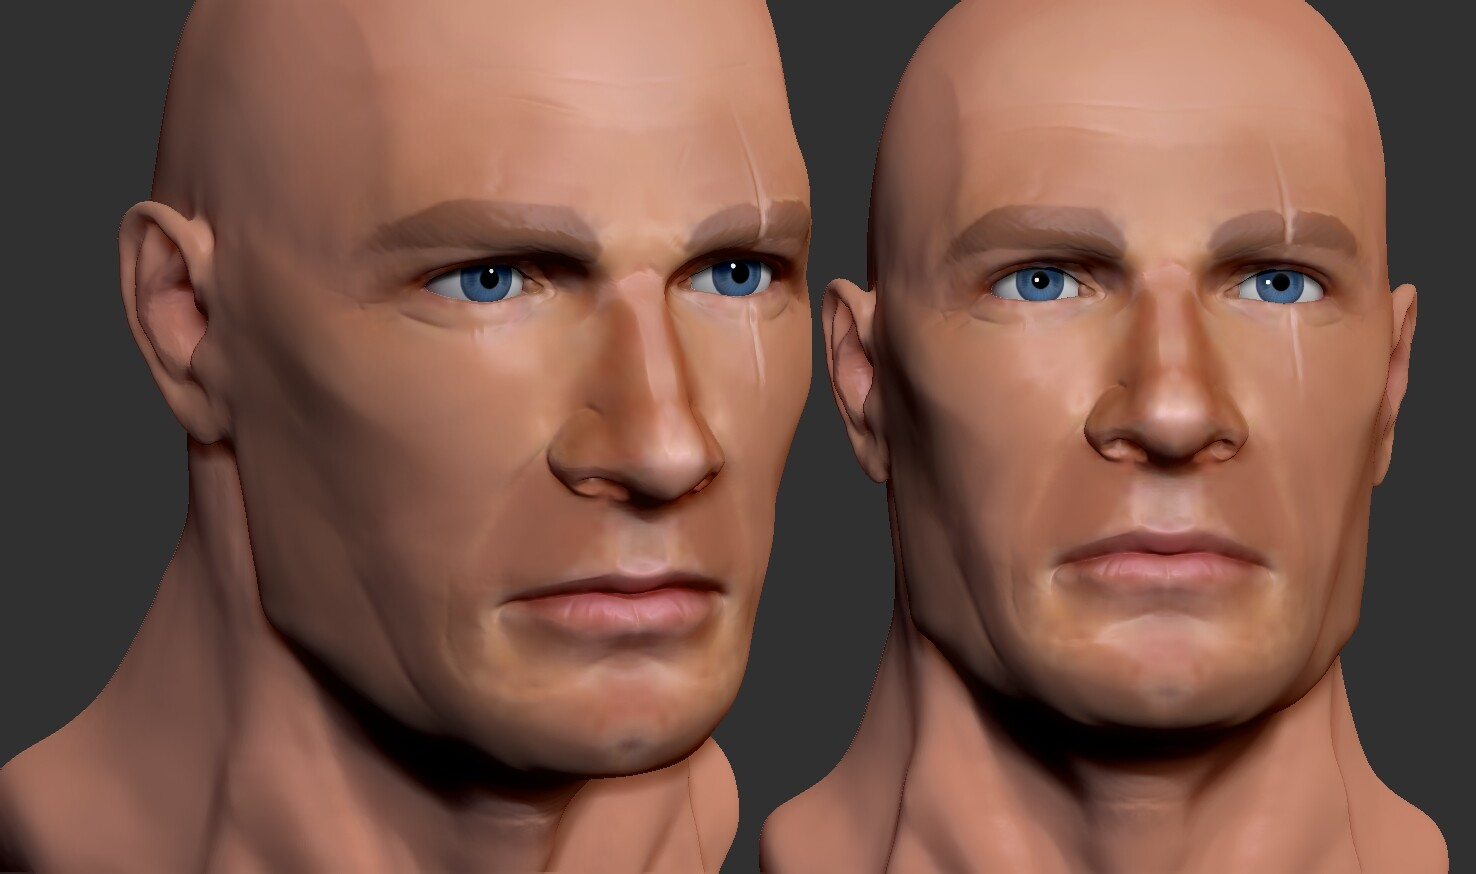 Zbrush preview render